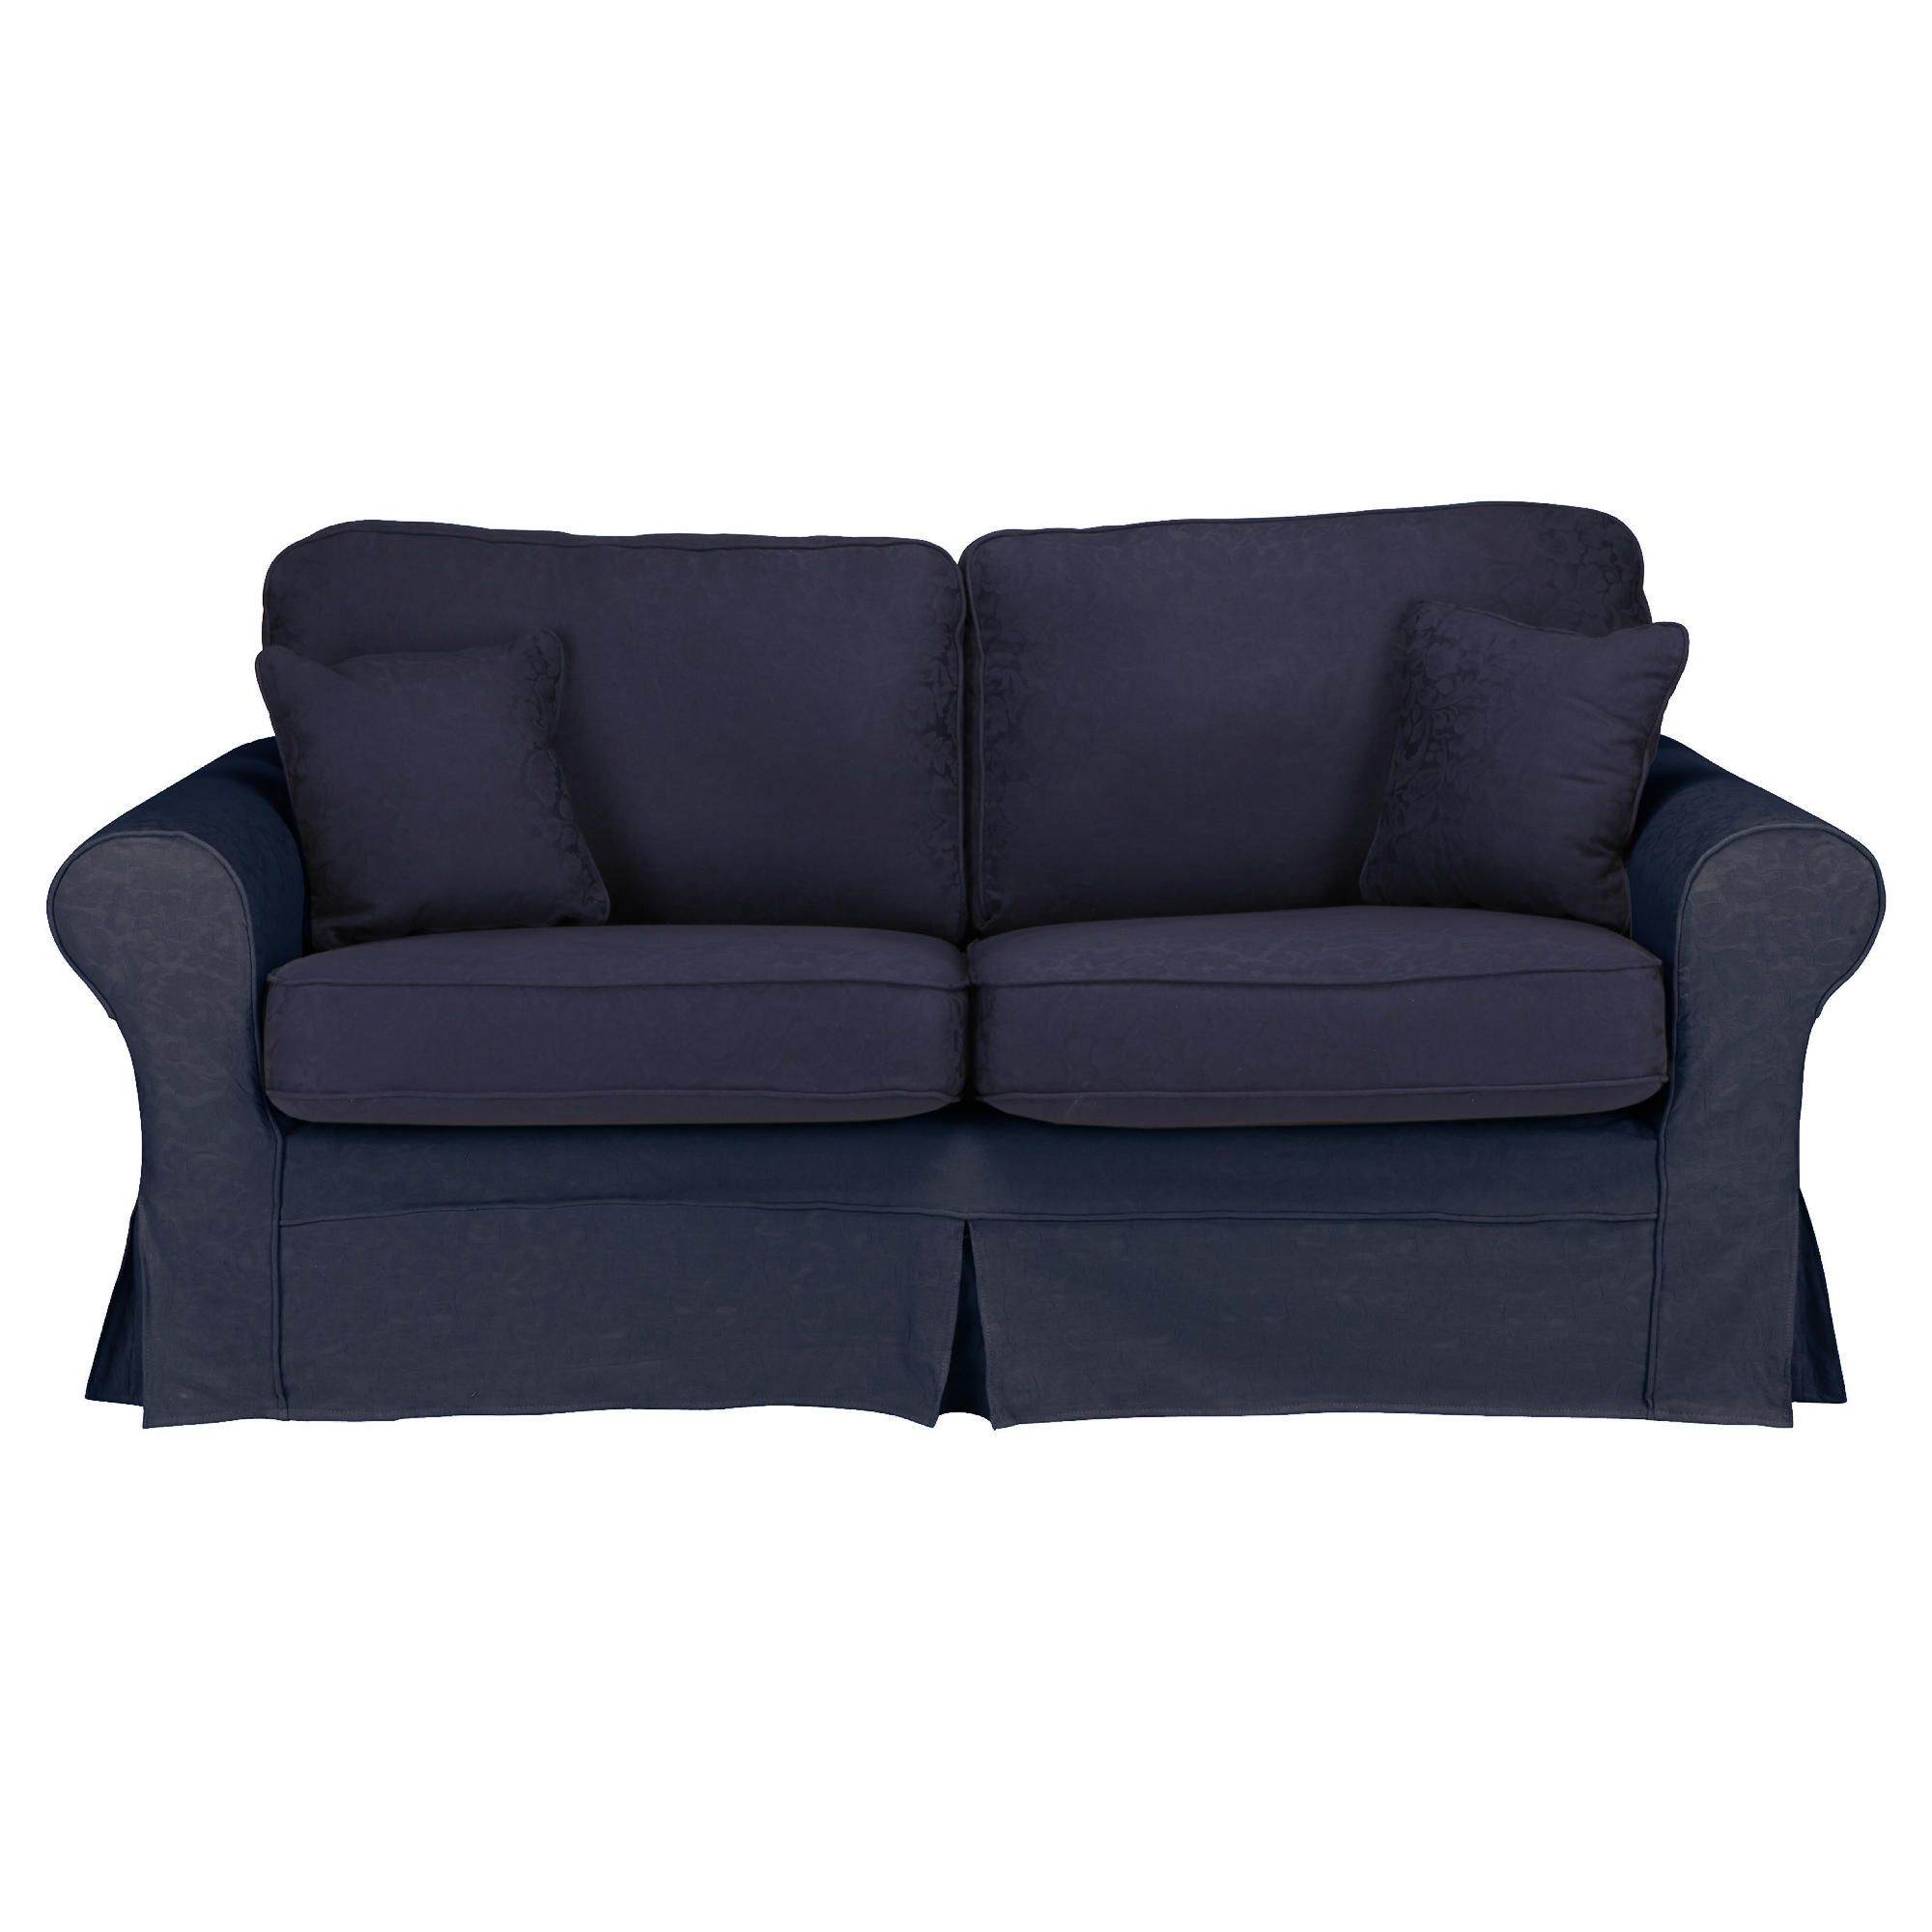 Louisa Small Sofa with Removable Jaquard Cover, Navy at Tesco Direct